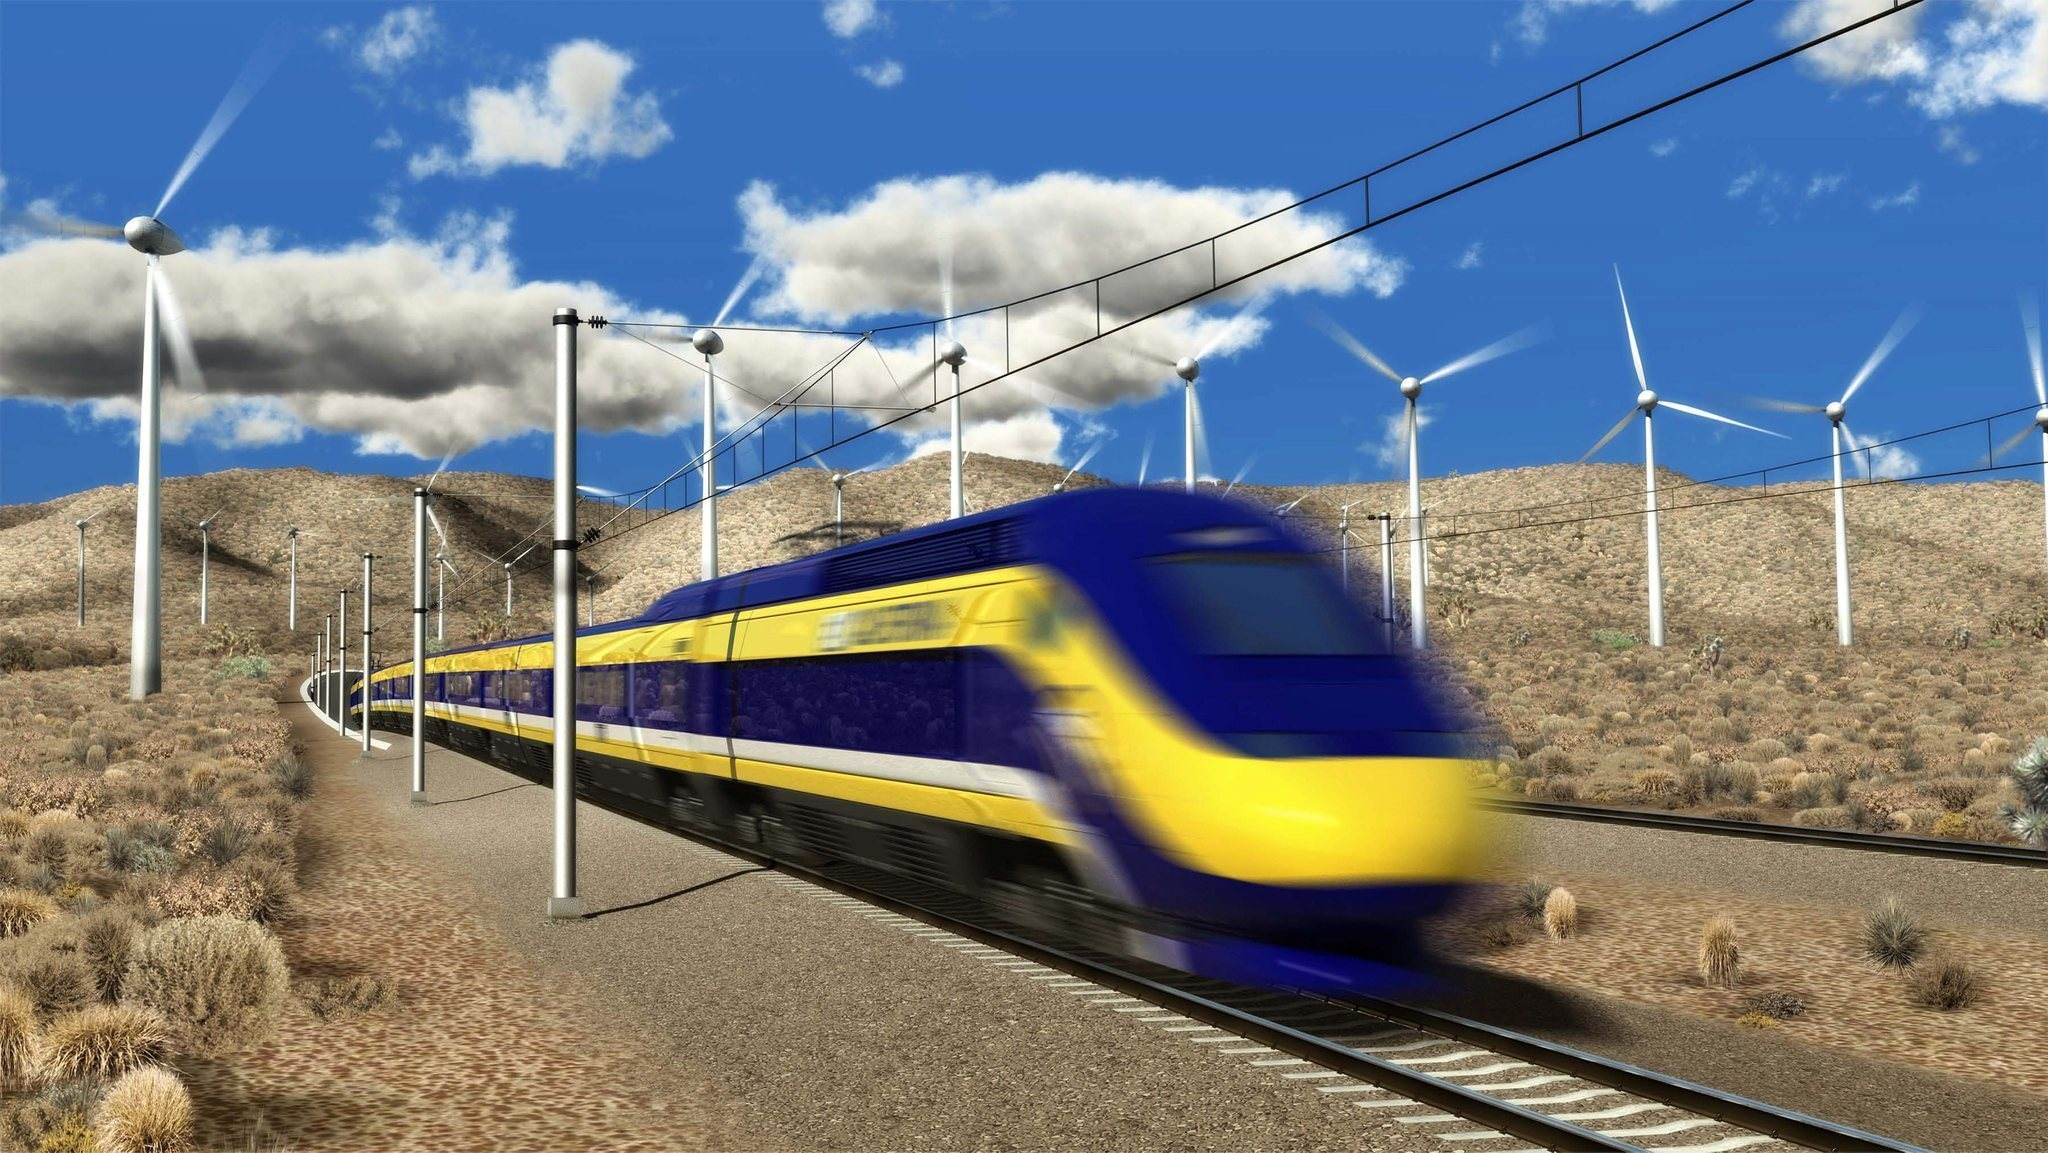 State will consider new bullet train route through Bakersfield